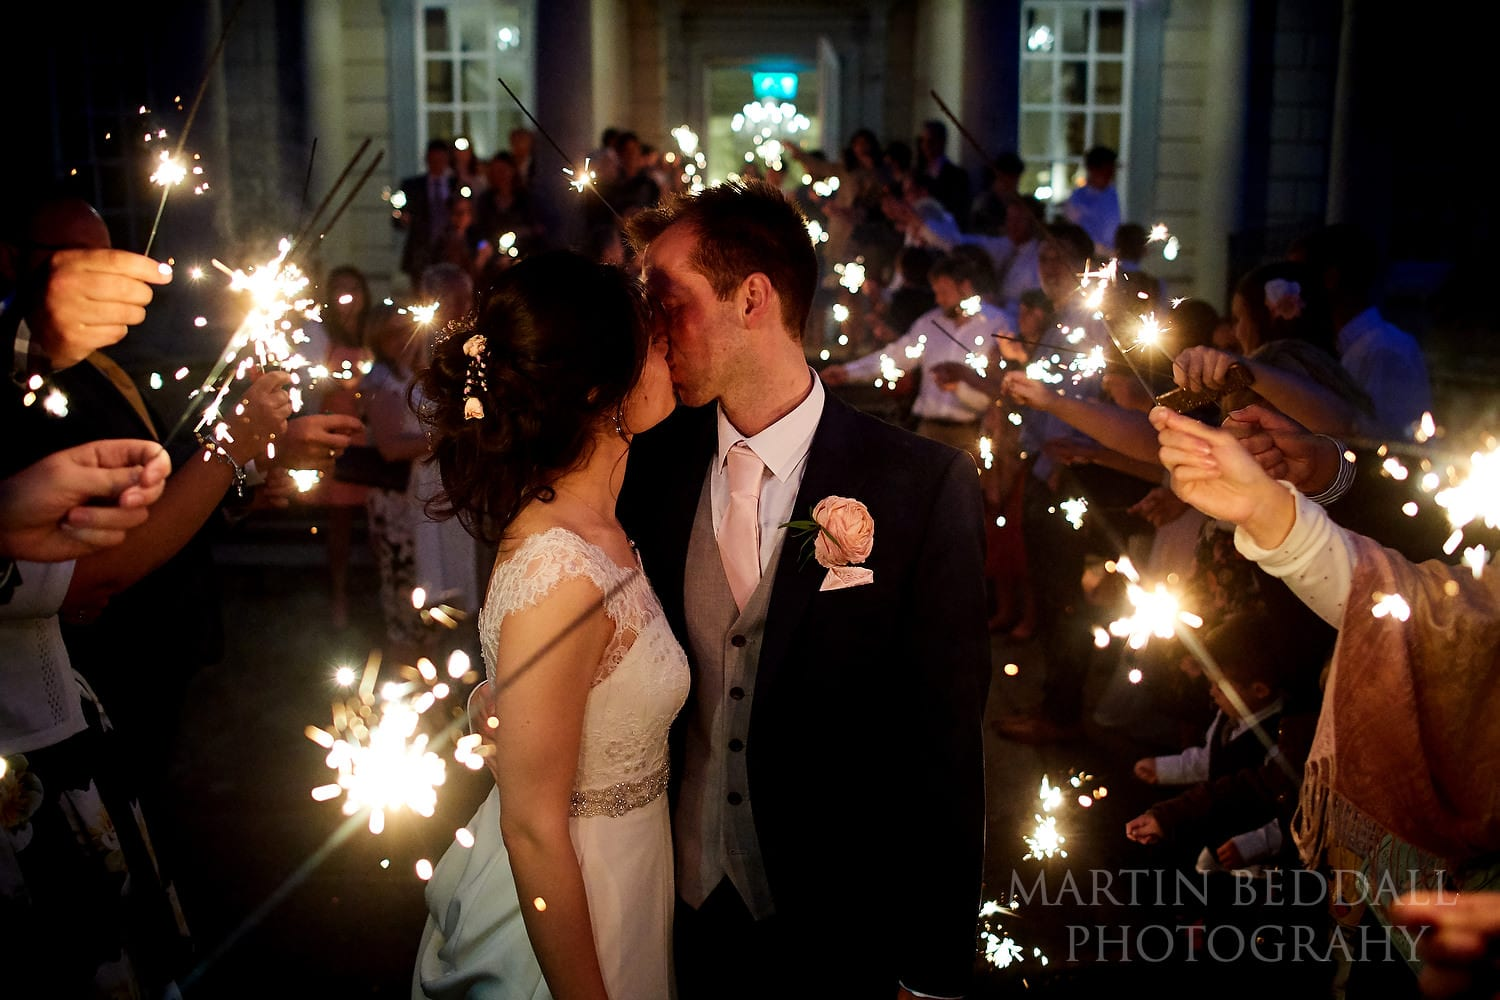 Wedding sparklers at Buxted Park